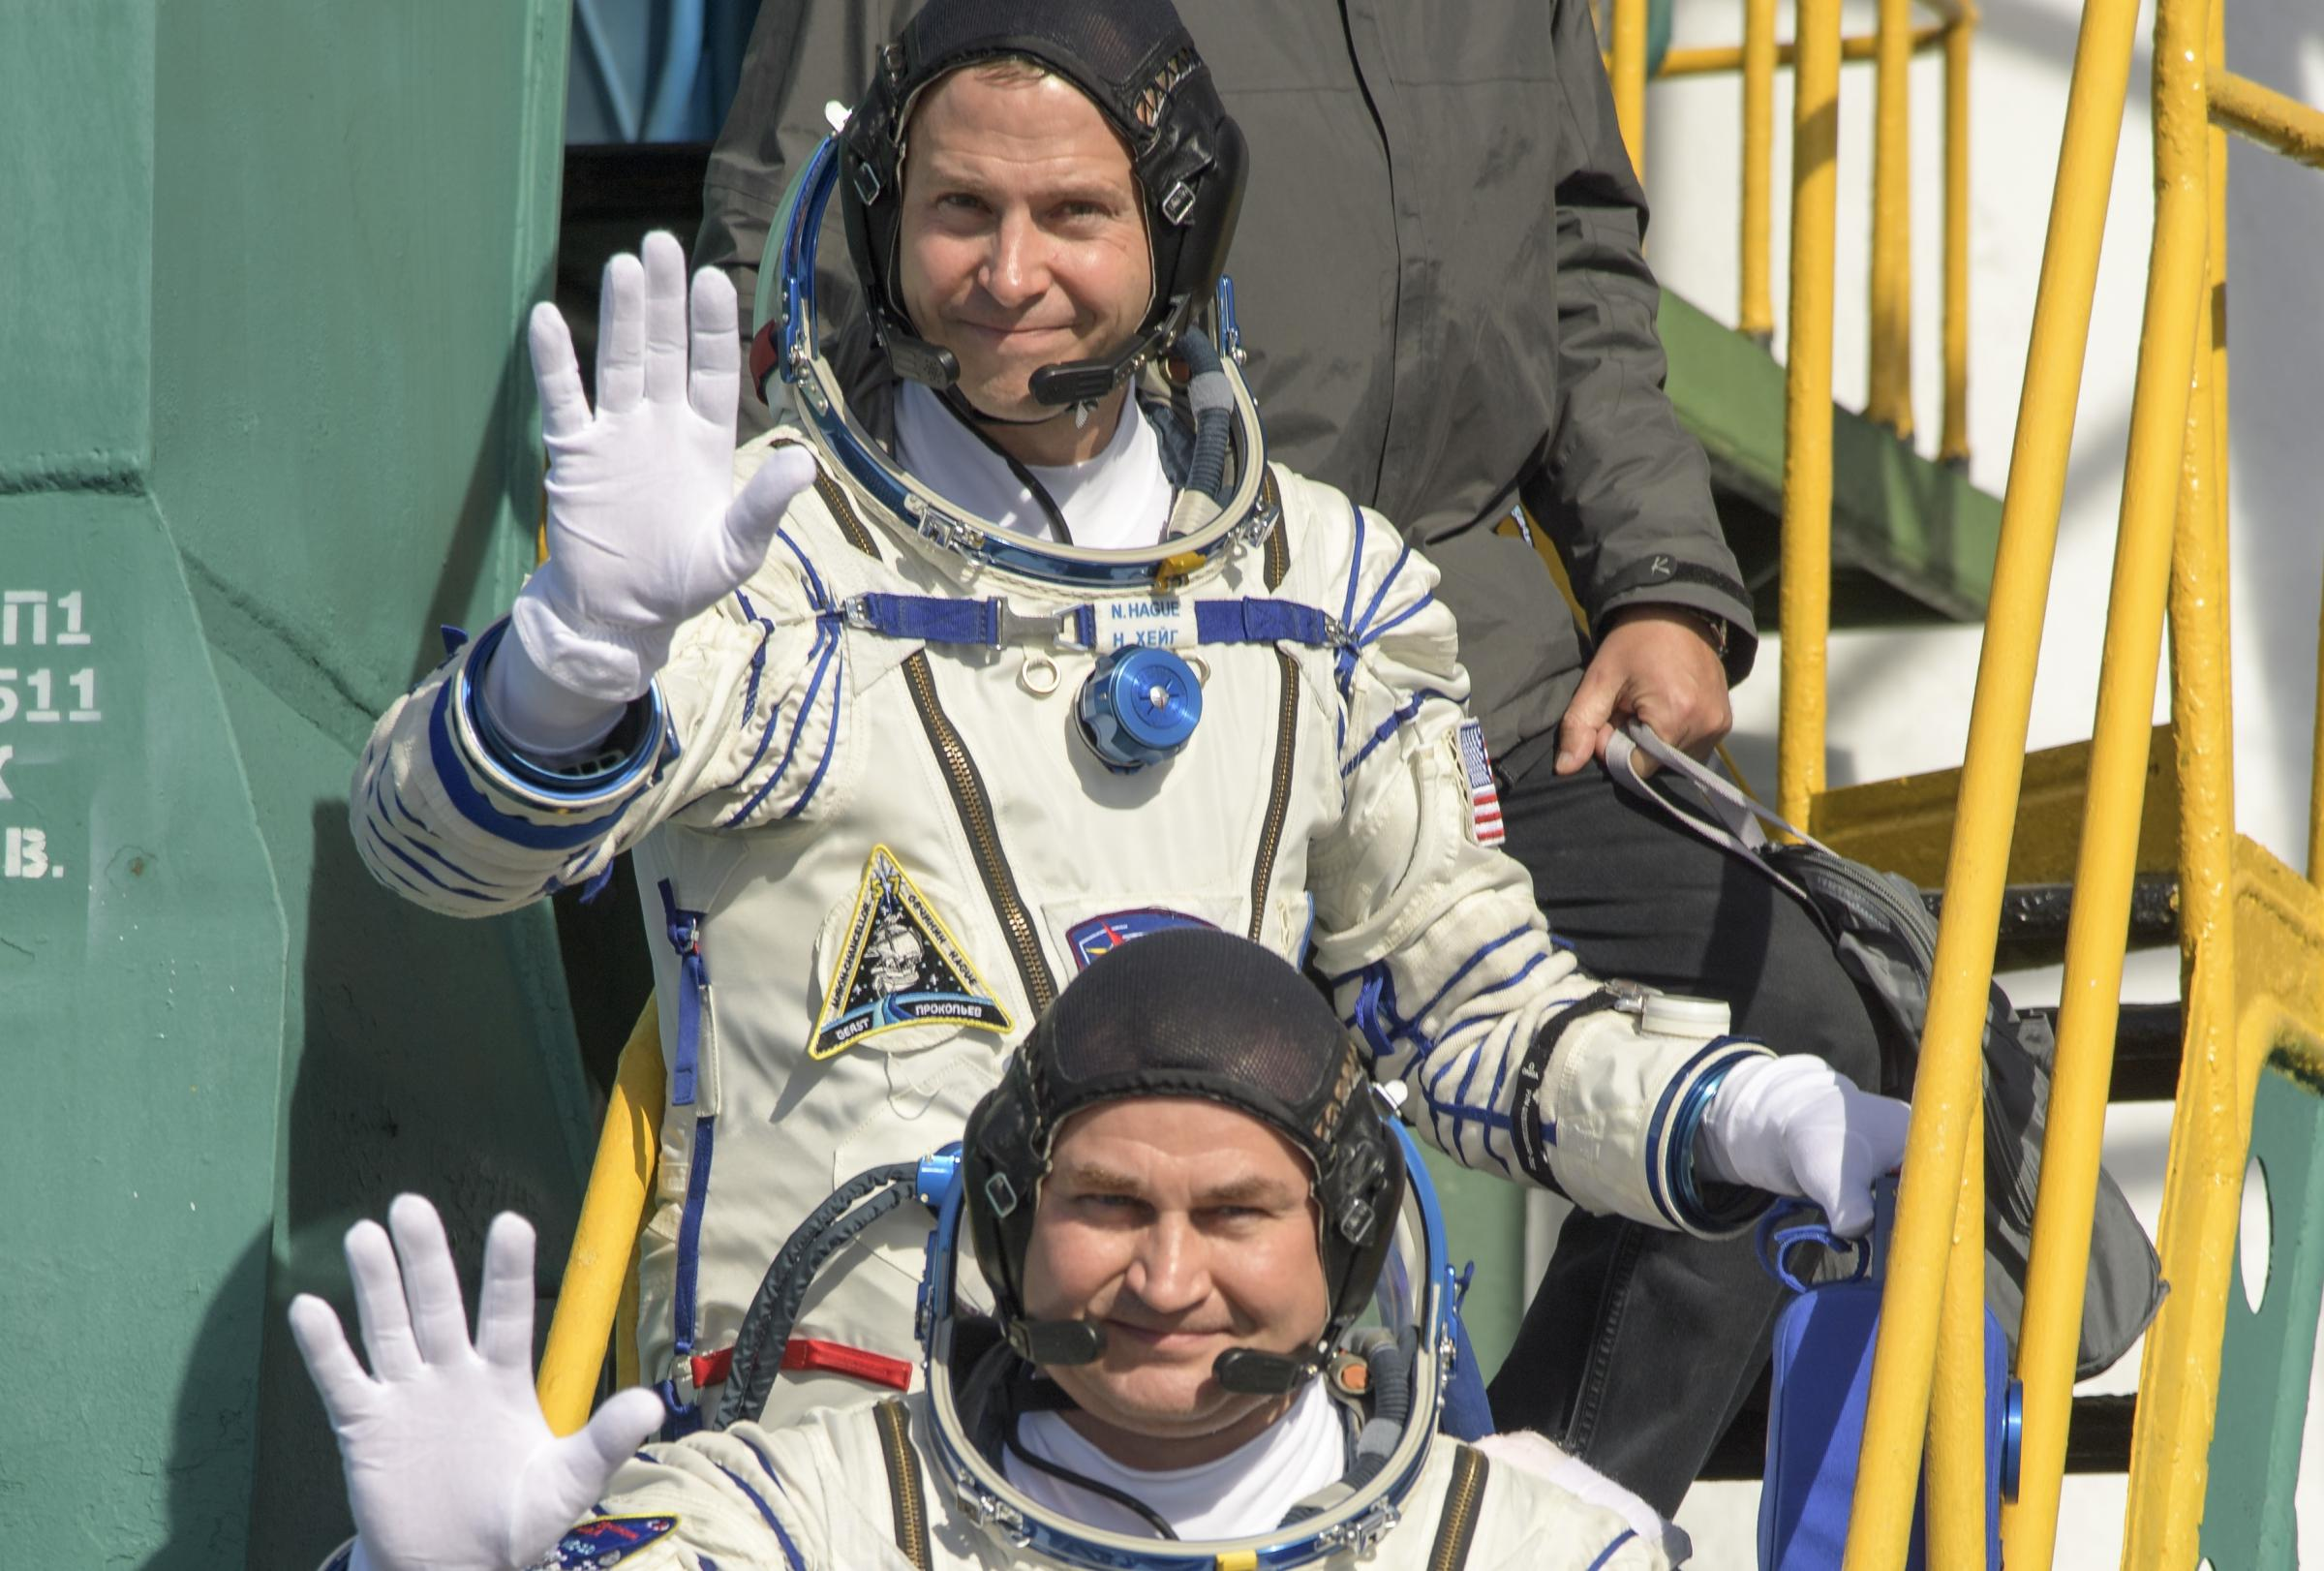 Nick Hague, top, and Alexey Ovchinin's capsule jettisoned from the rocket. Photograph: Getty